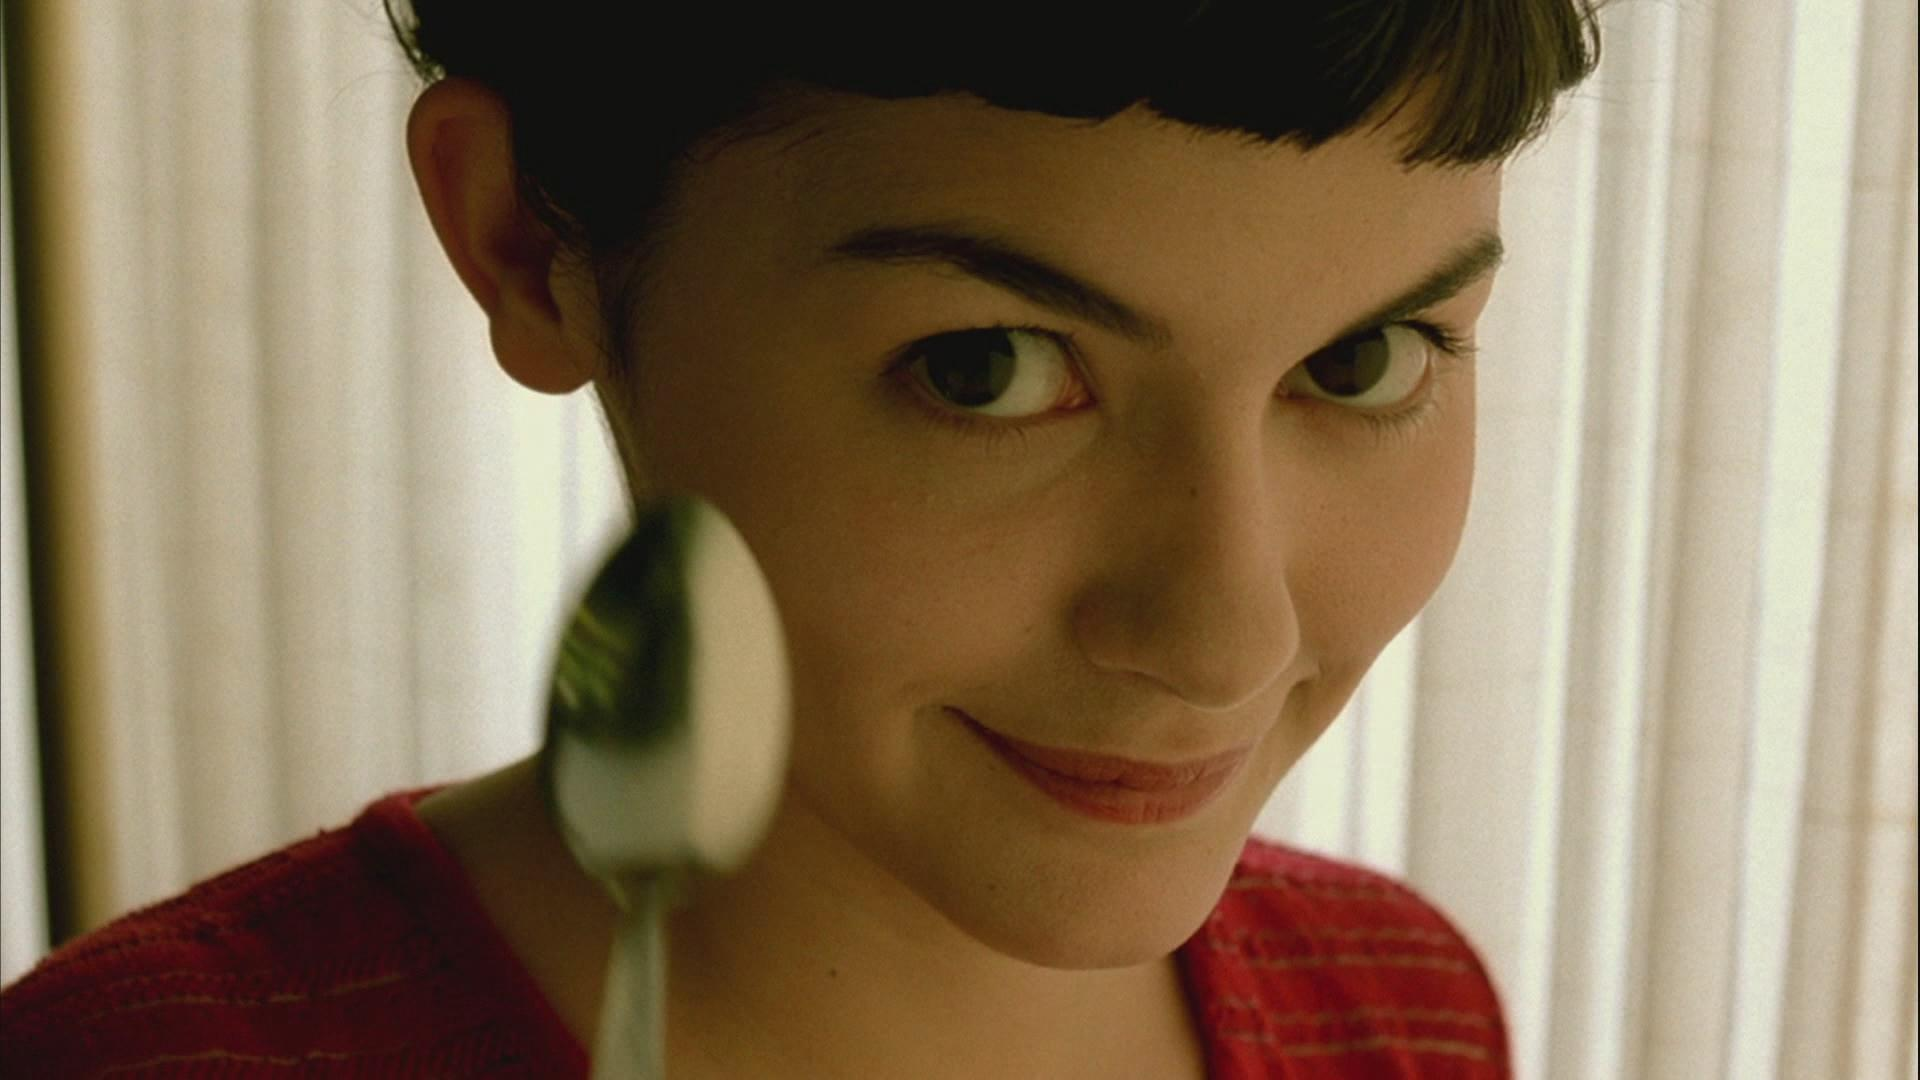 Amelie - All About Amelie